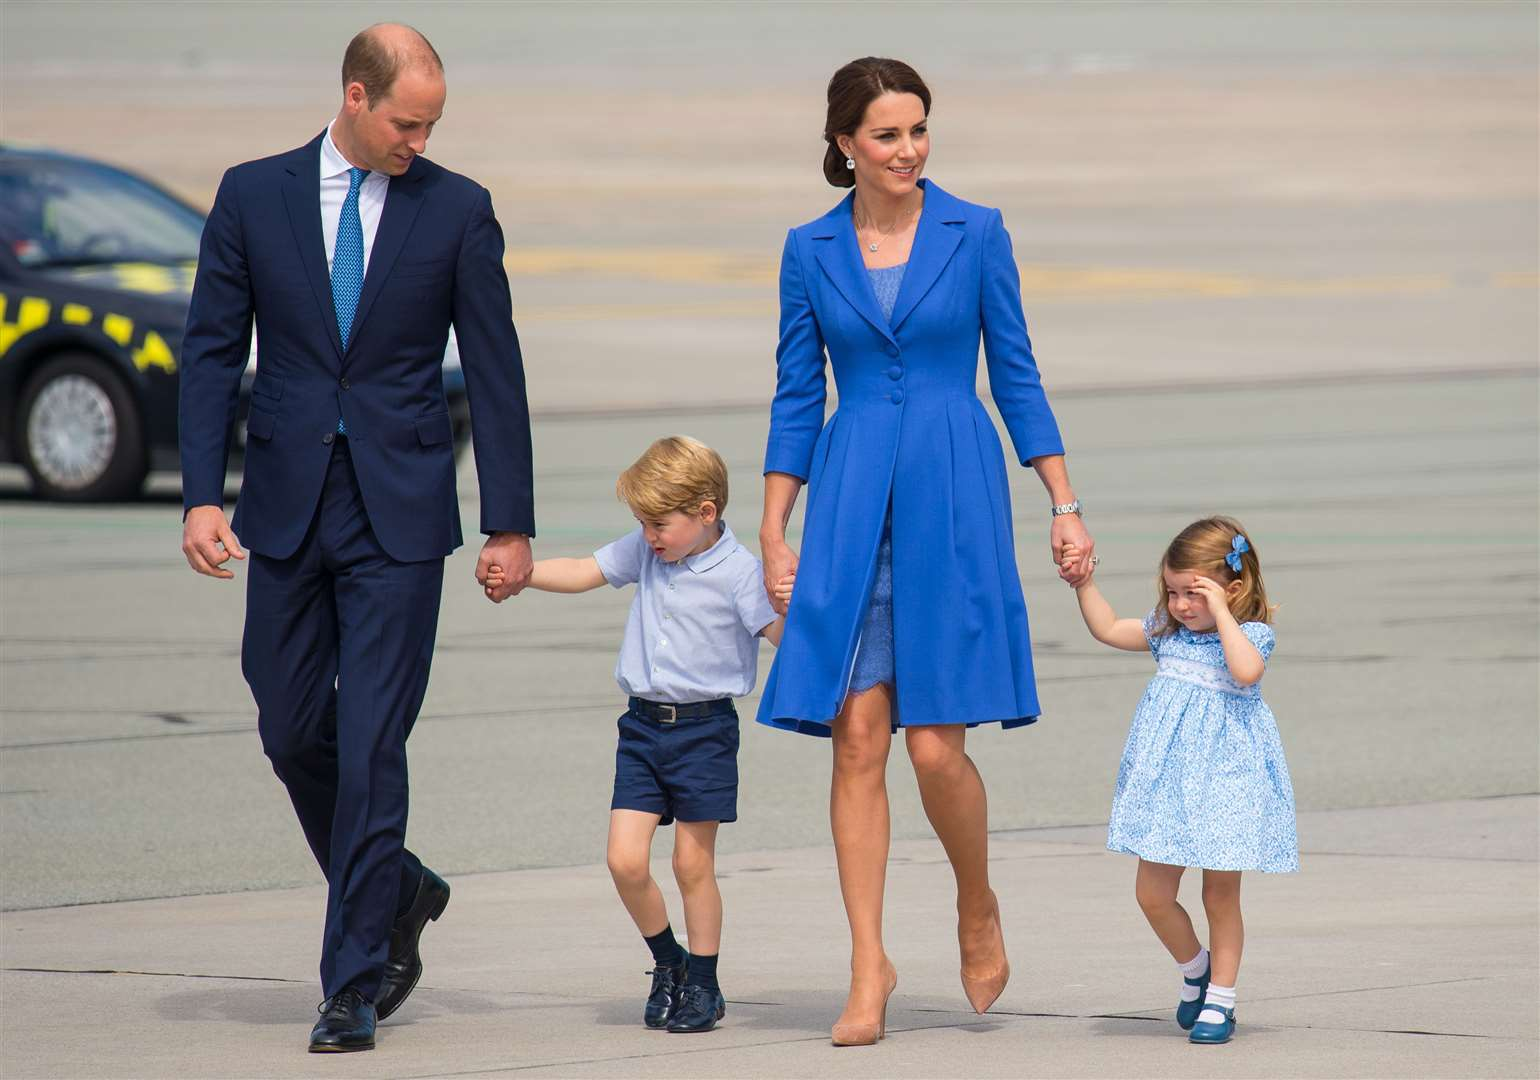 The Duke and Duchess of Cambridge, Prince George and Princess Charlotte at the airport ahead of a royal tour